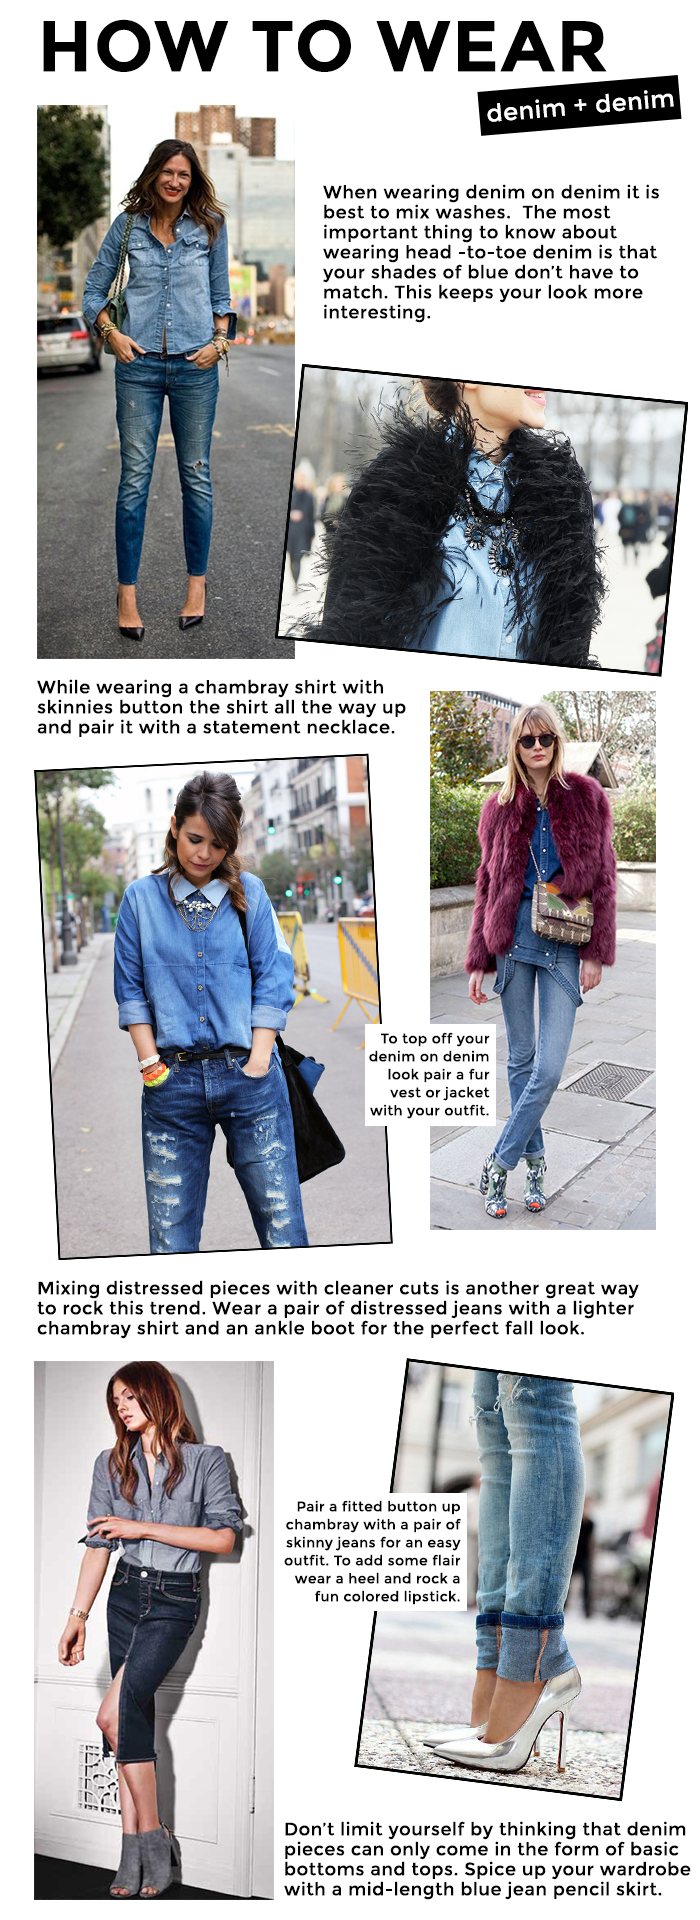 How-to-Wear-Denim-on-Denim